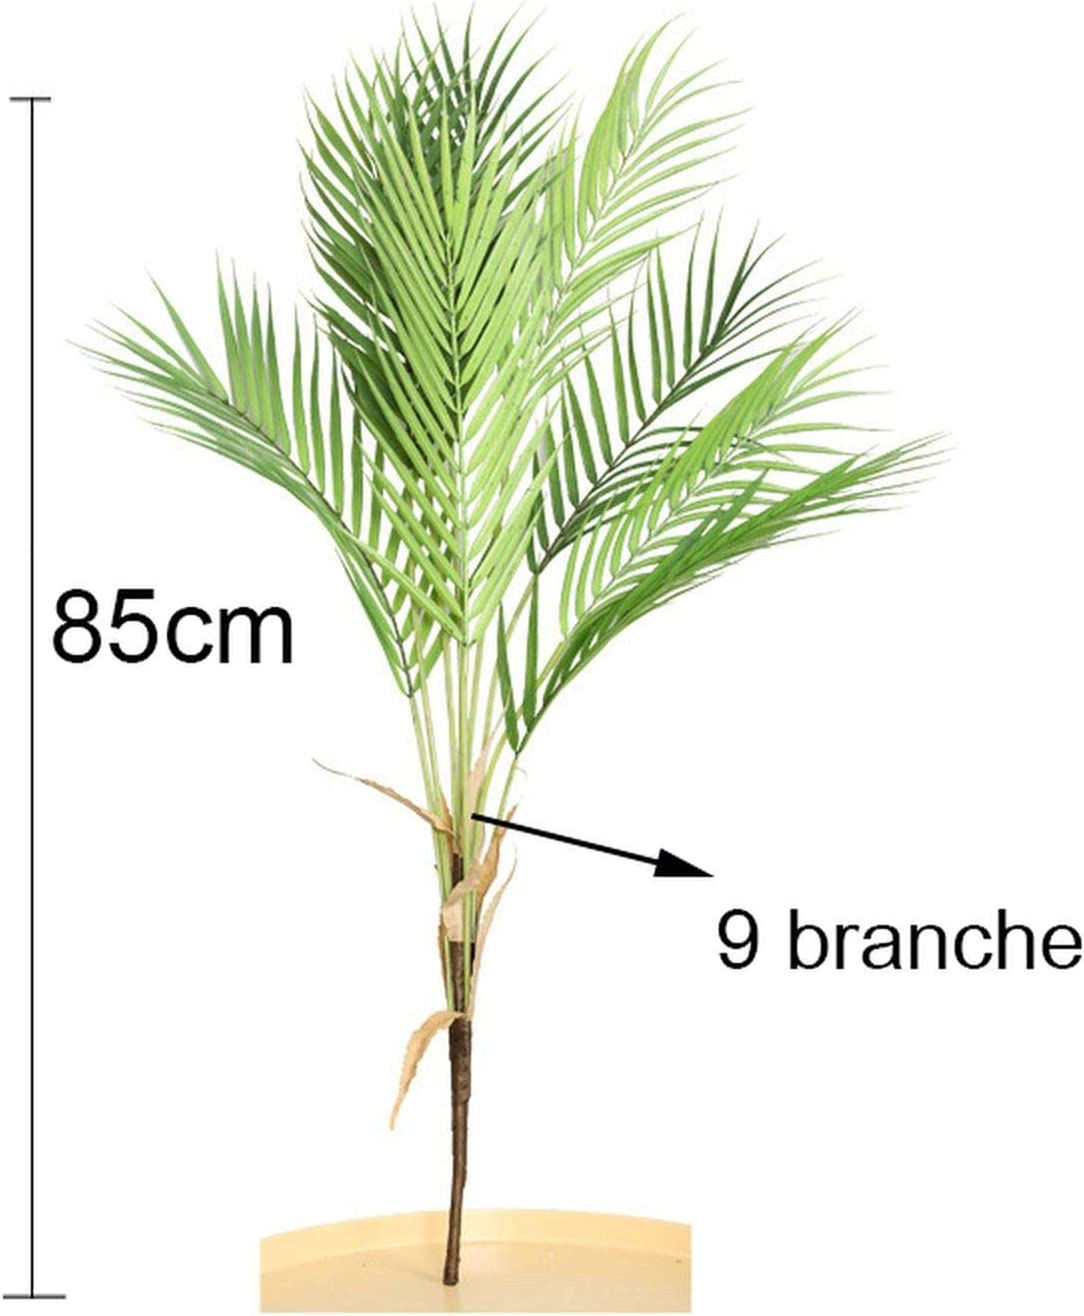 Amazon.com: Artificial Green Plant Coconut Leaf Artificial ... on house plant schefflera arboricola, house plant palm care, bamboo tree, house plant flower, house plant orchid, house plant swedish ivy, yucca house plant tree, house plant arrow, house plant rubber plant, house plant grass, house plants that look like trees, low maintenance indoor plants tree, house plant pineapple, house plant house, house plant with green leaves and white, corn house plant tree, house plant umbrella tree, house plant bamboo, house plant propagation, house plant pink,